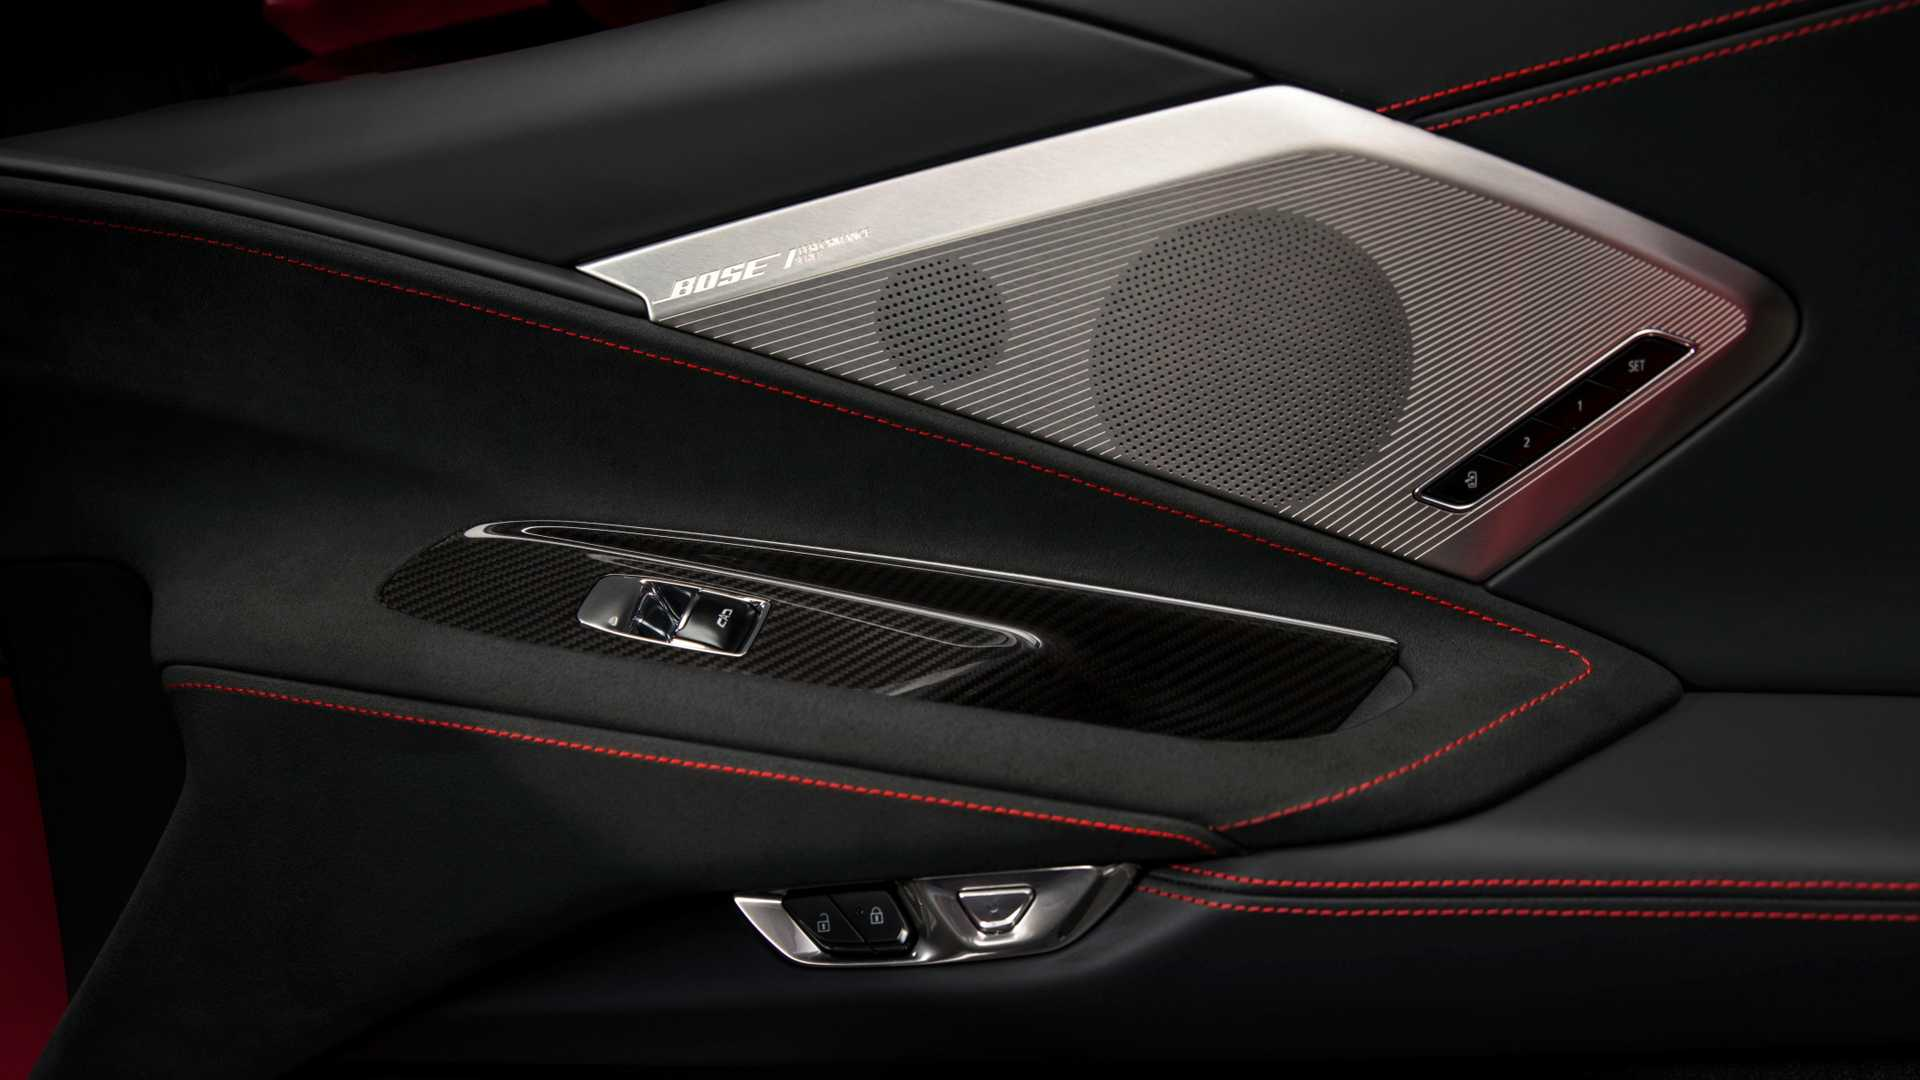 Cars With Best Sound System 2020 2020 Corvette Has Bose's Loudest Audio System In A Two Seat Coupe